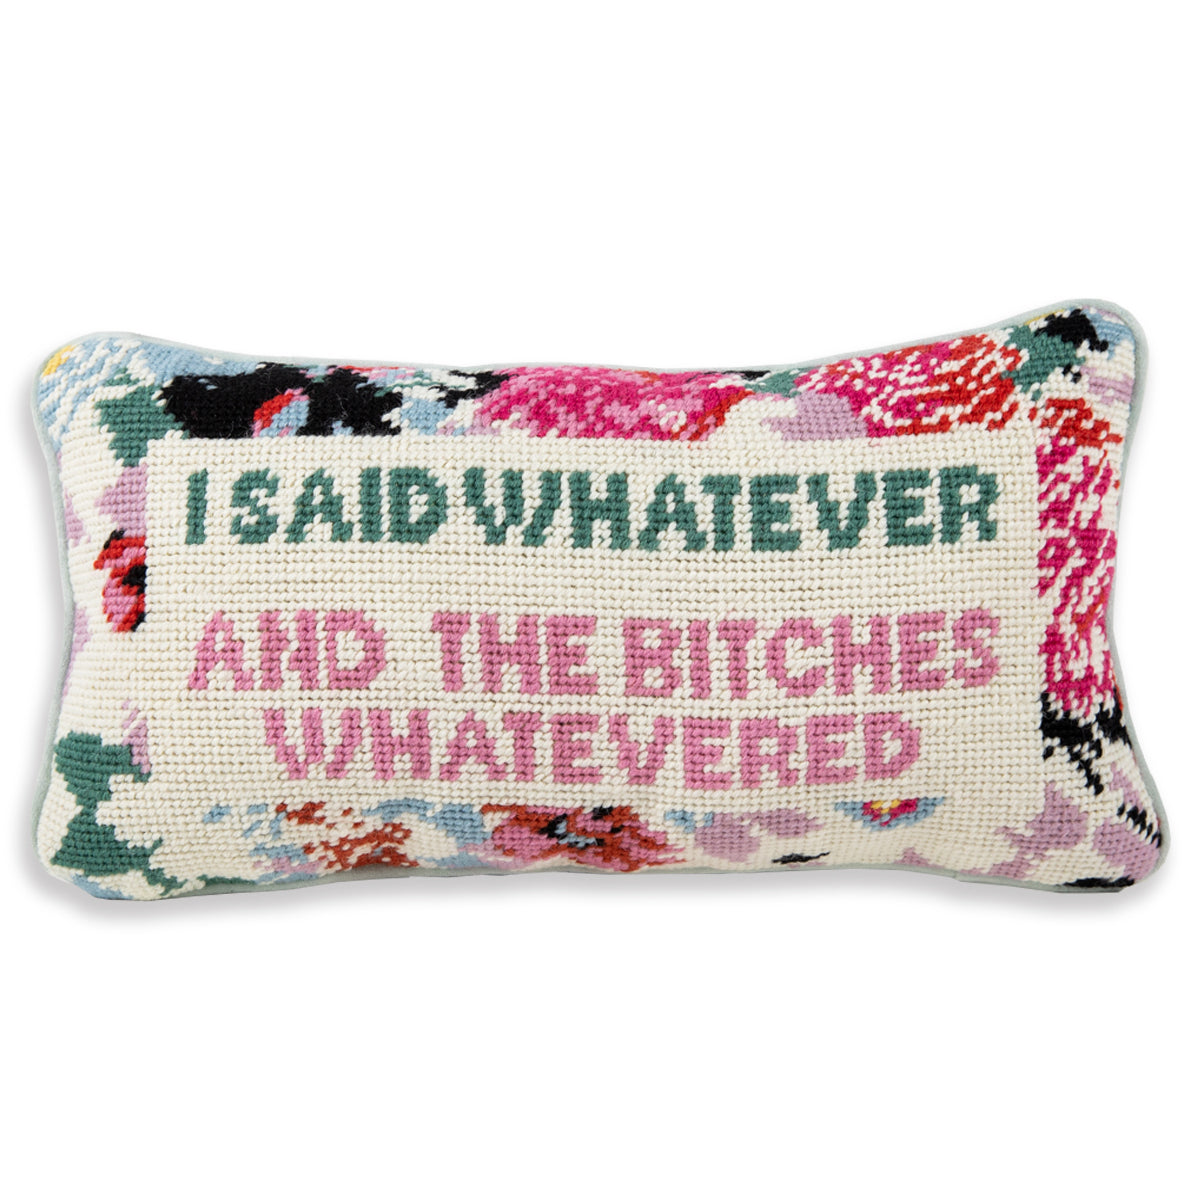 Furbish Studio Exclusive - Whatever Bitches Needlepoint Pillow